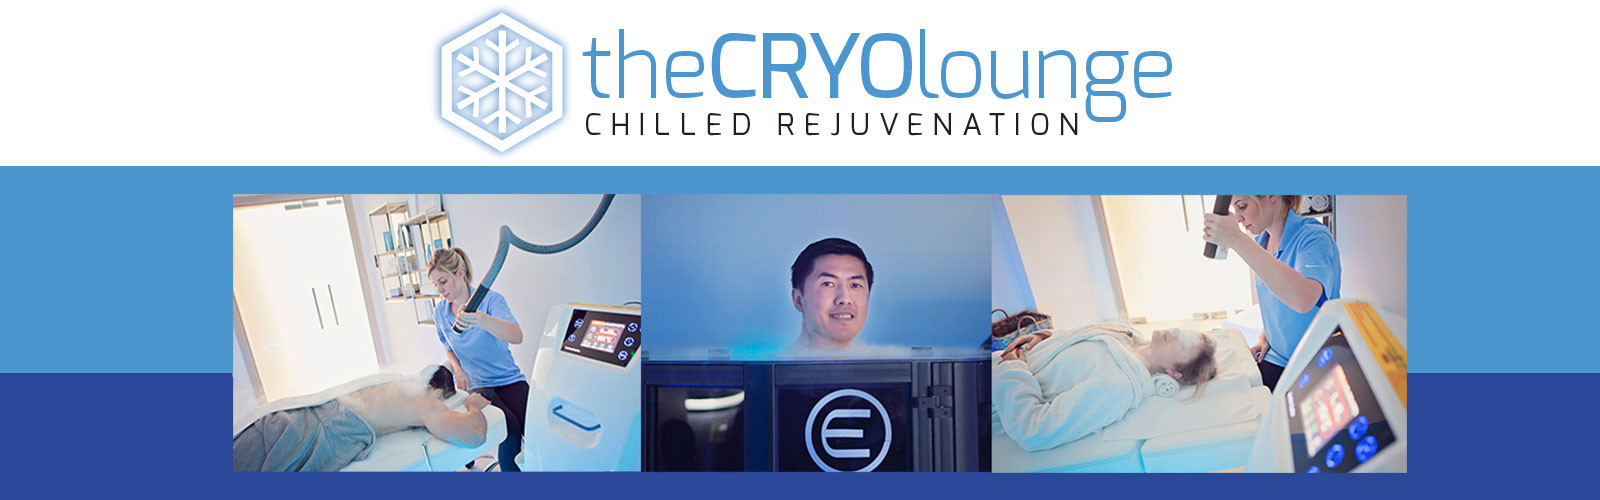 Cryo-Homepage-Photo-1